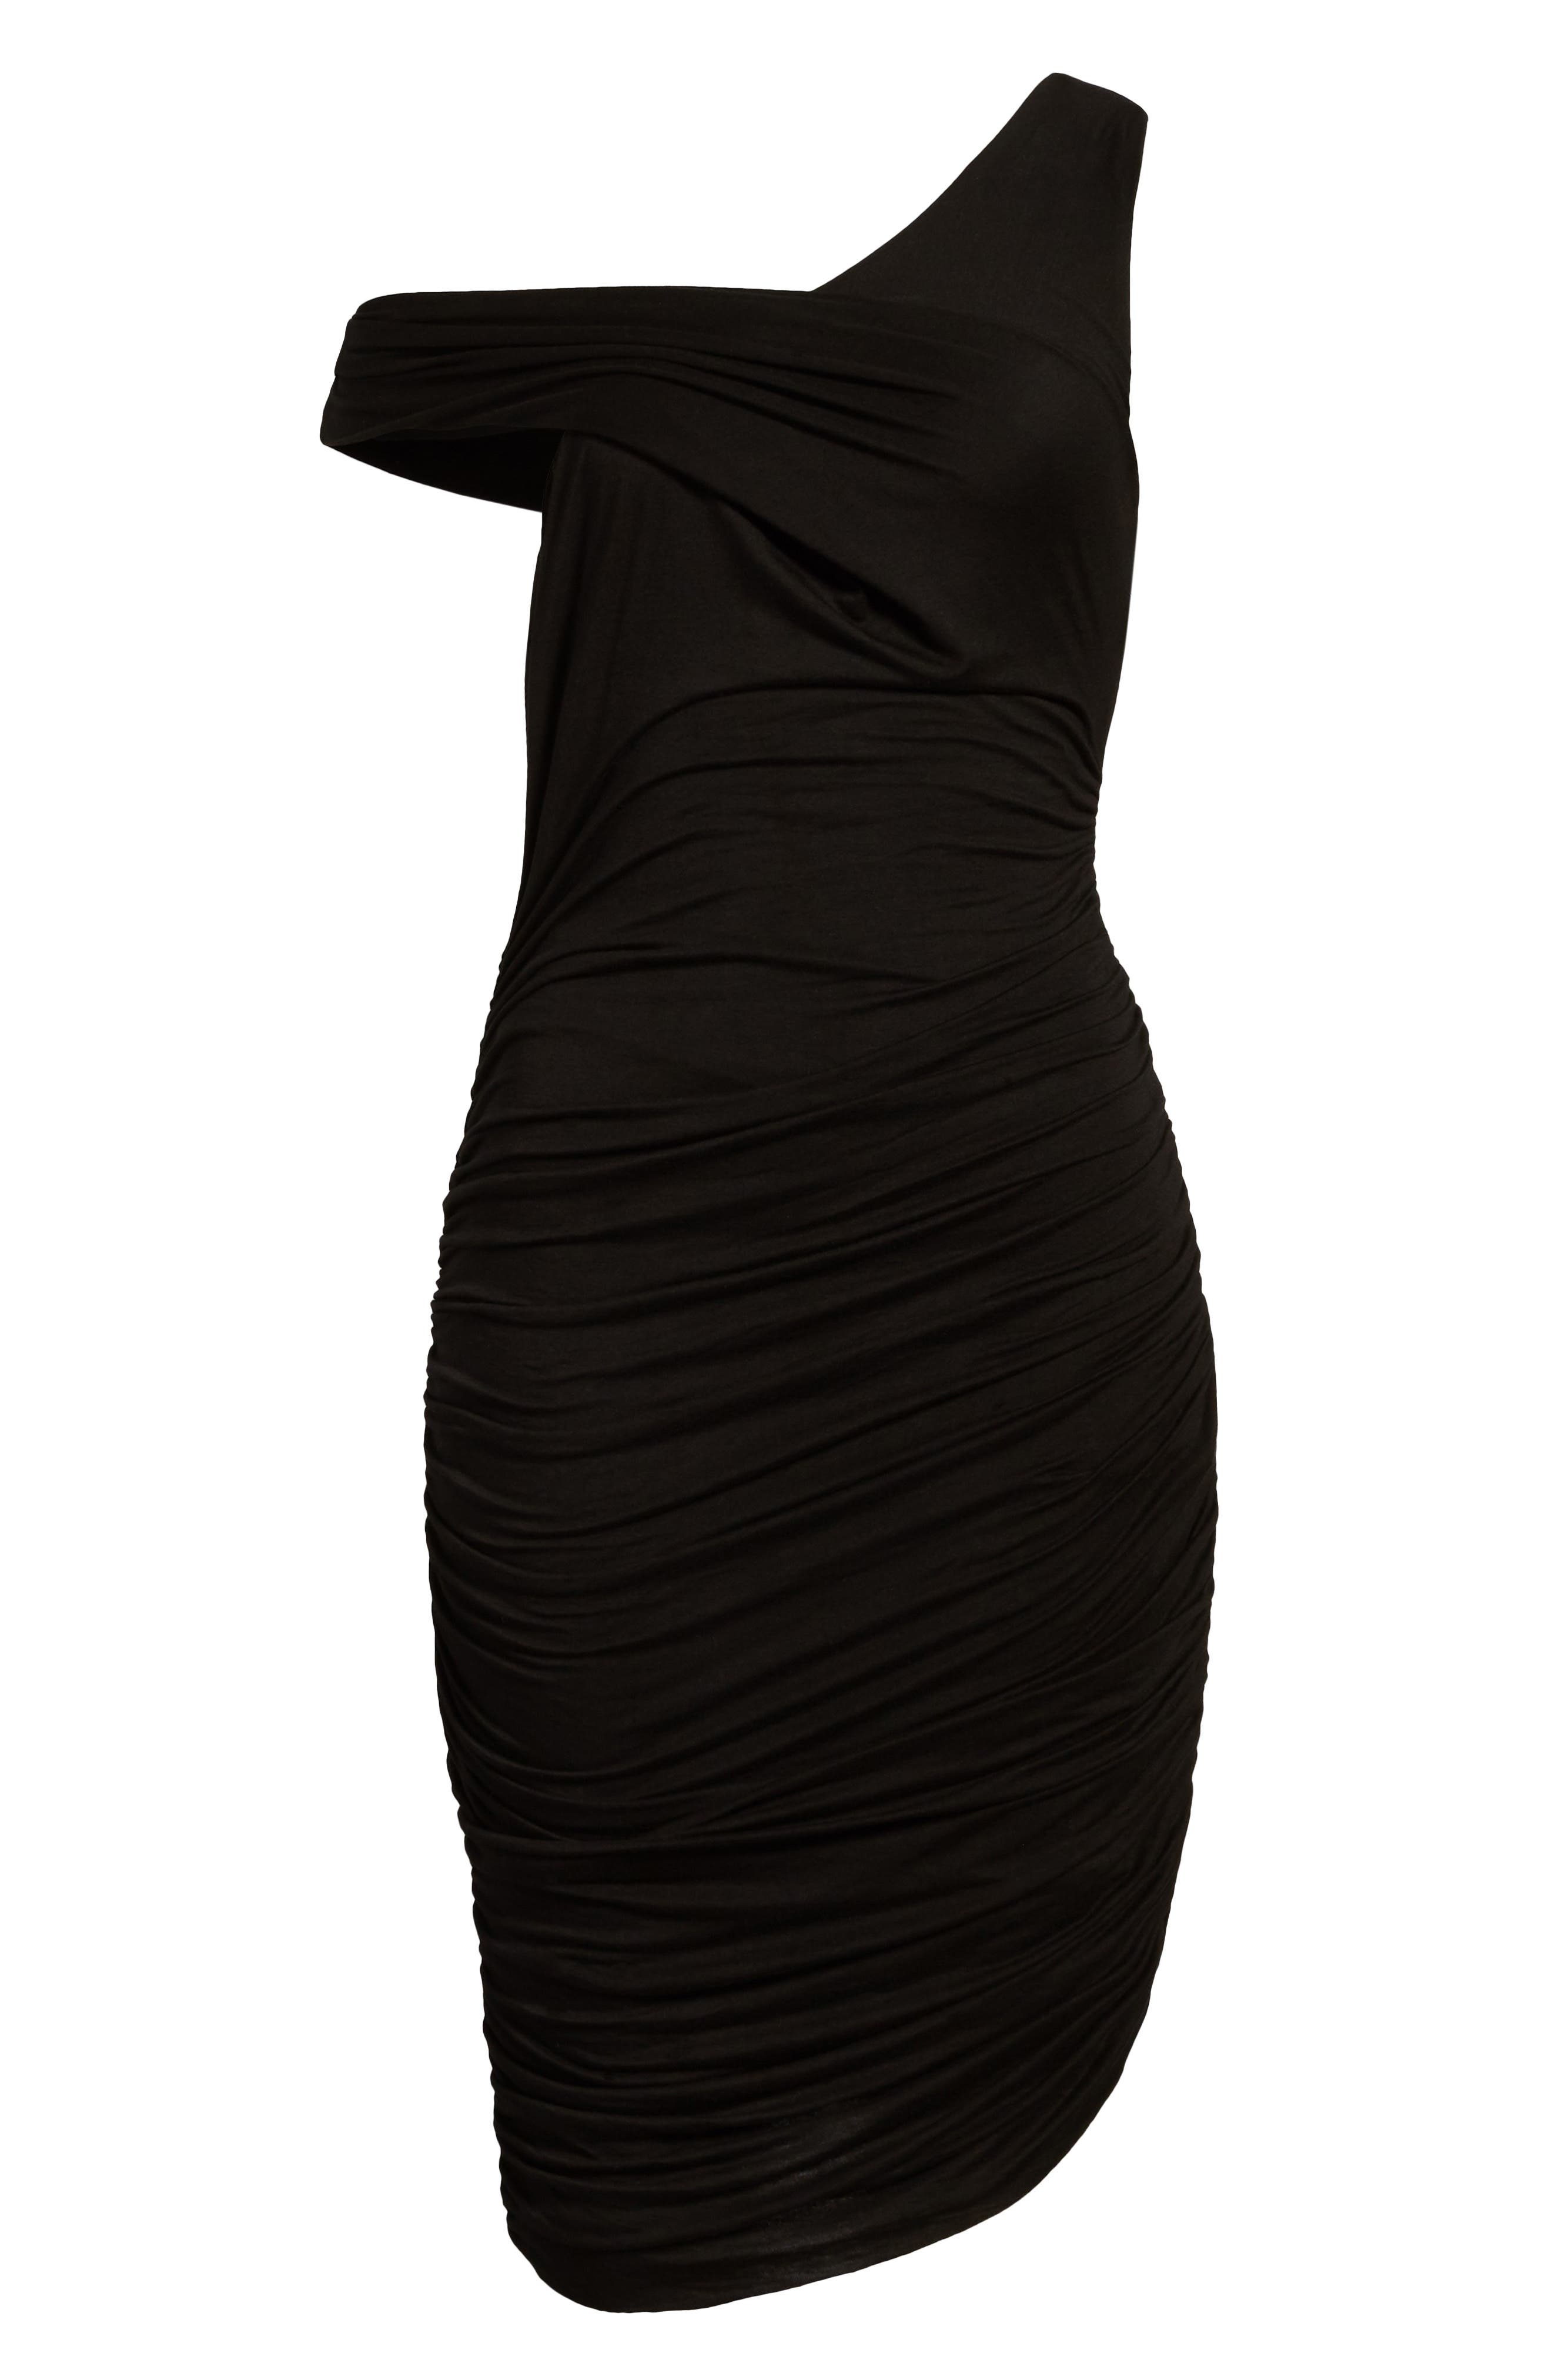 Ruched Sheath Dress,                             Alternate thumbnail 7, color,                             001